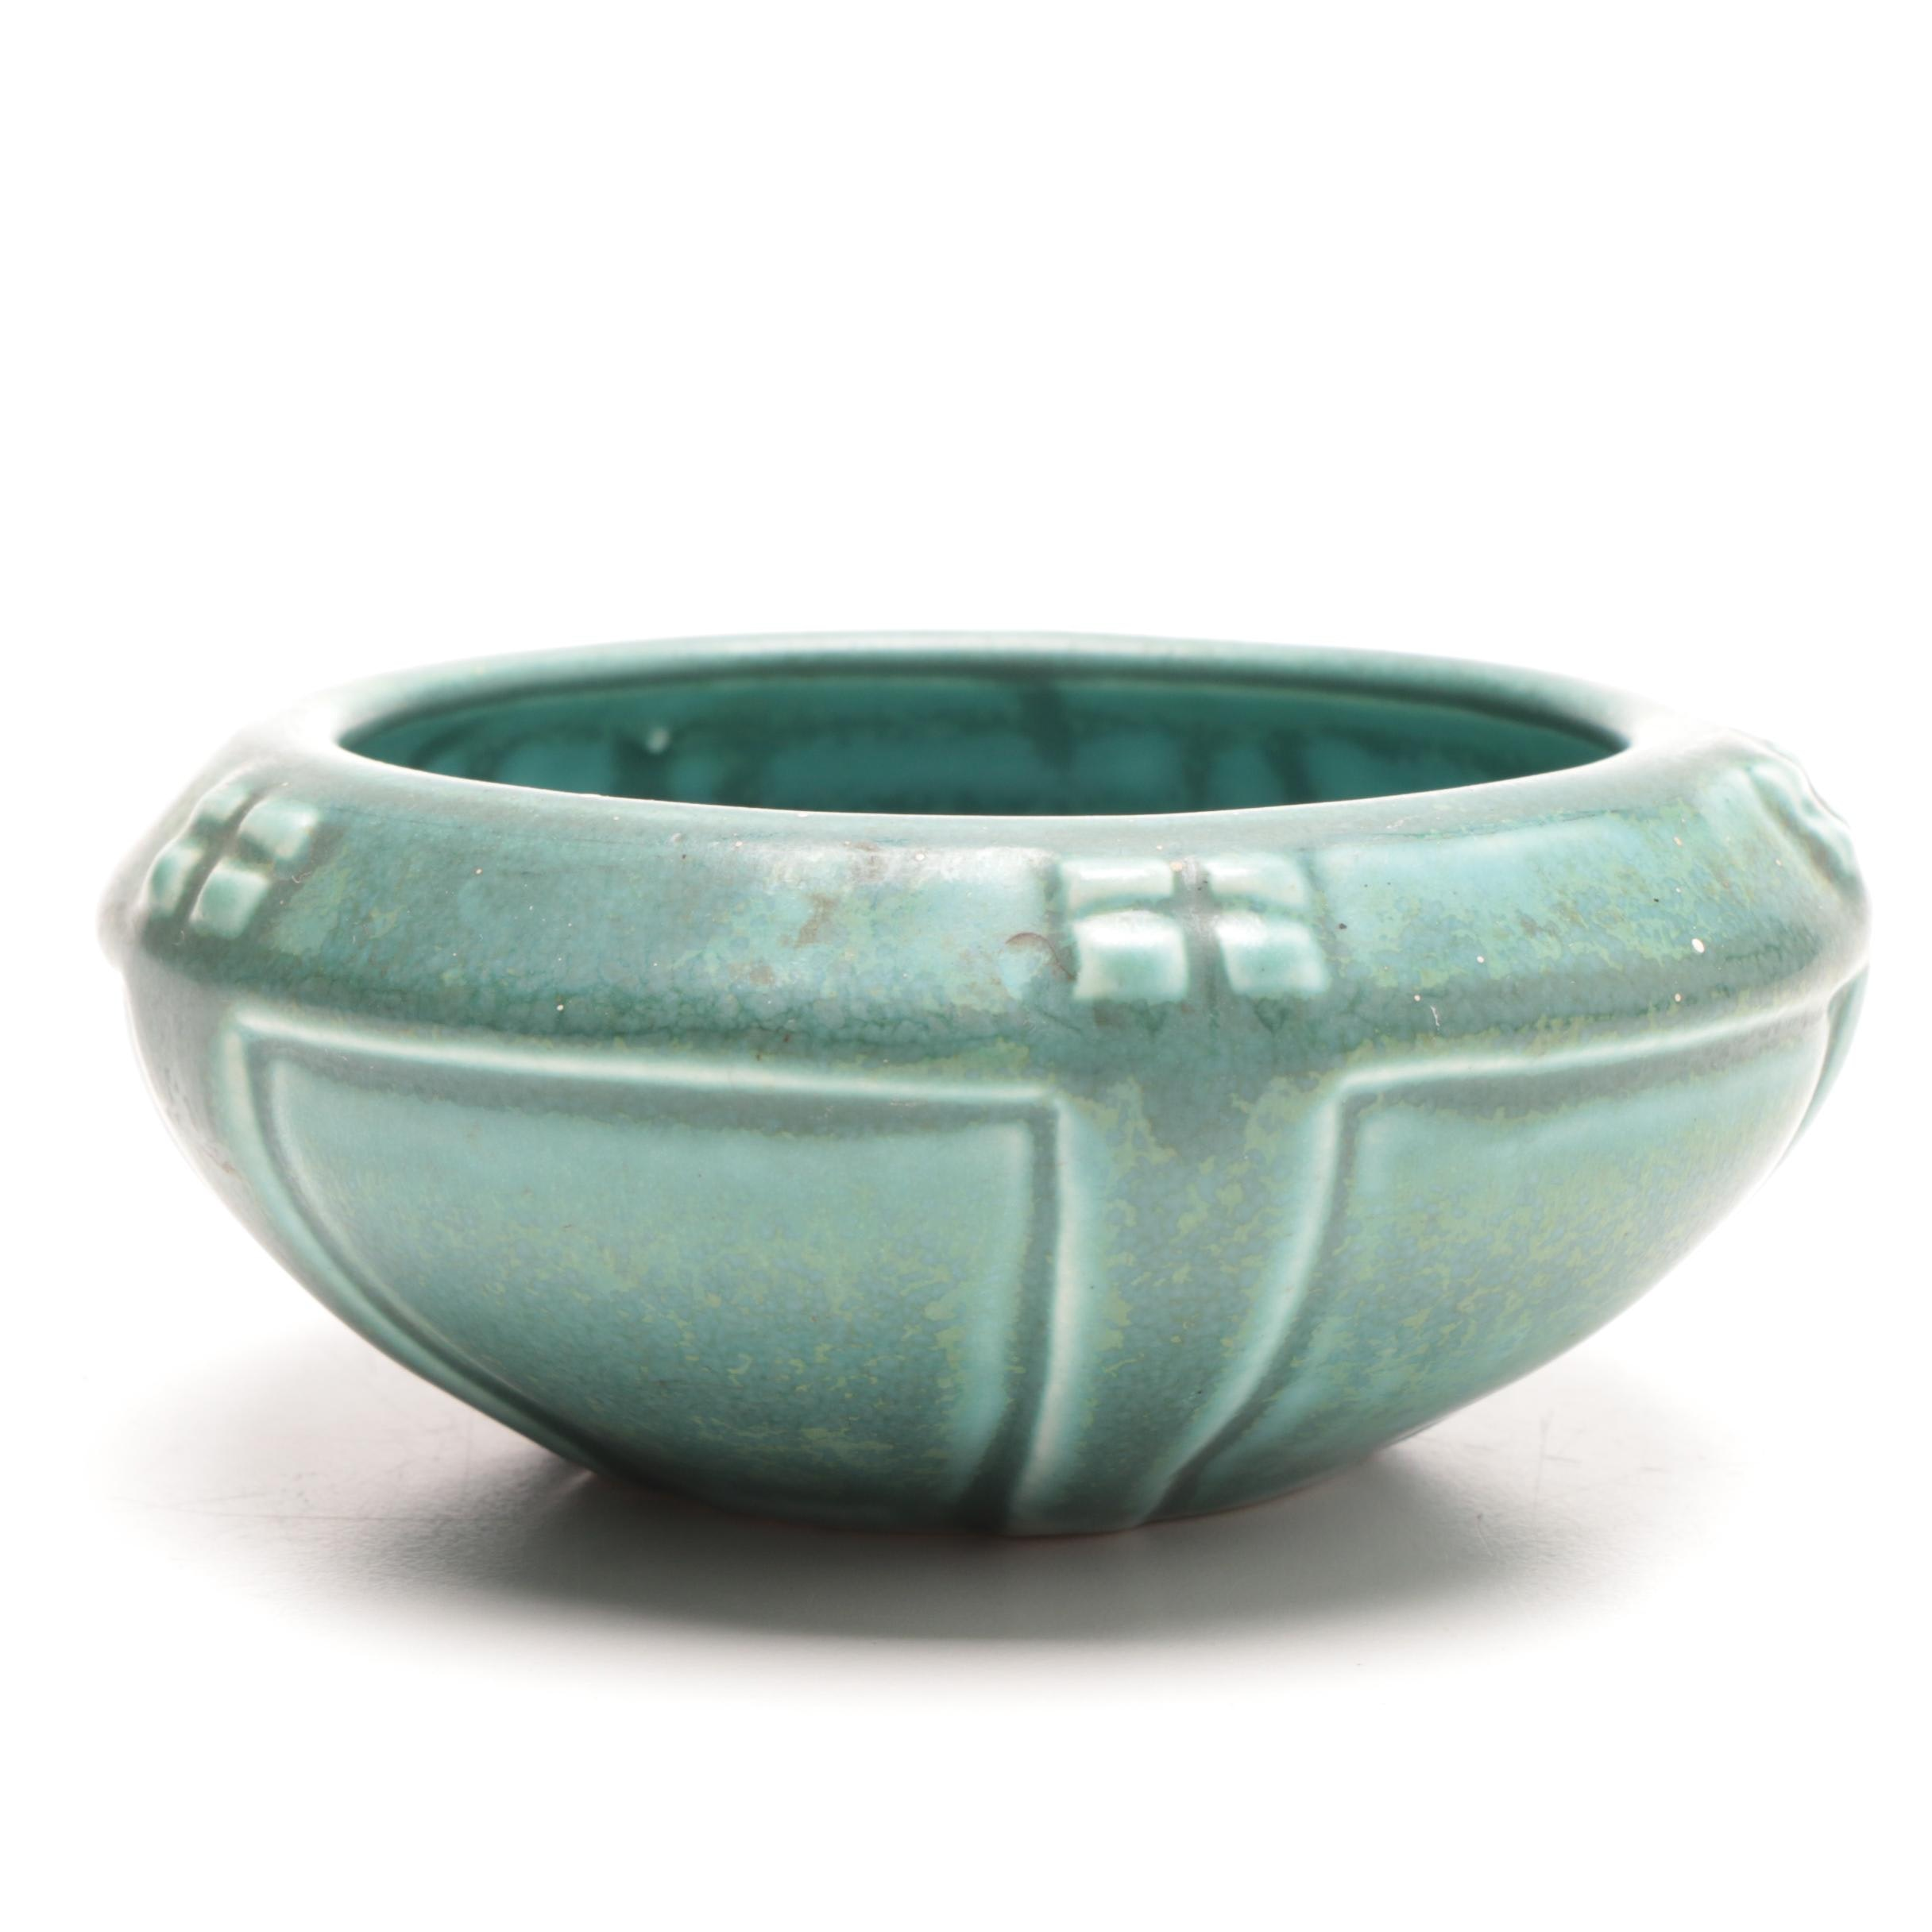 1929 Rookwood Pottery Bowl